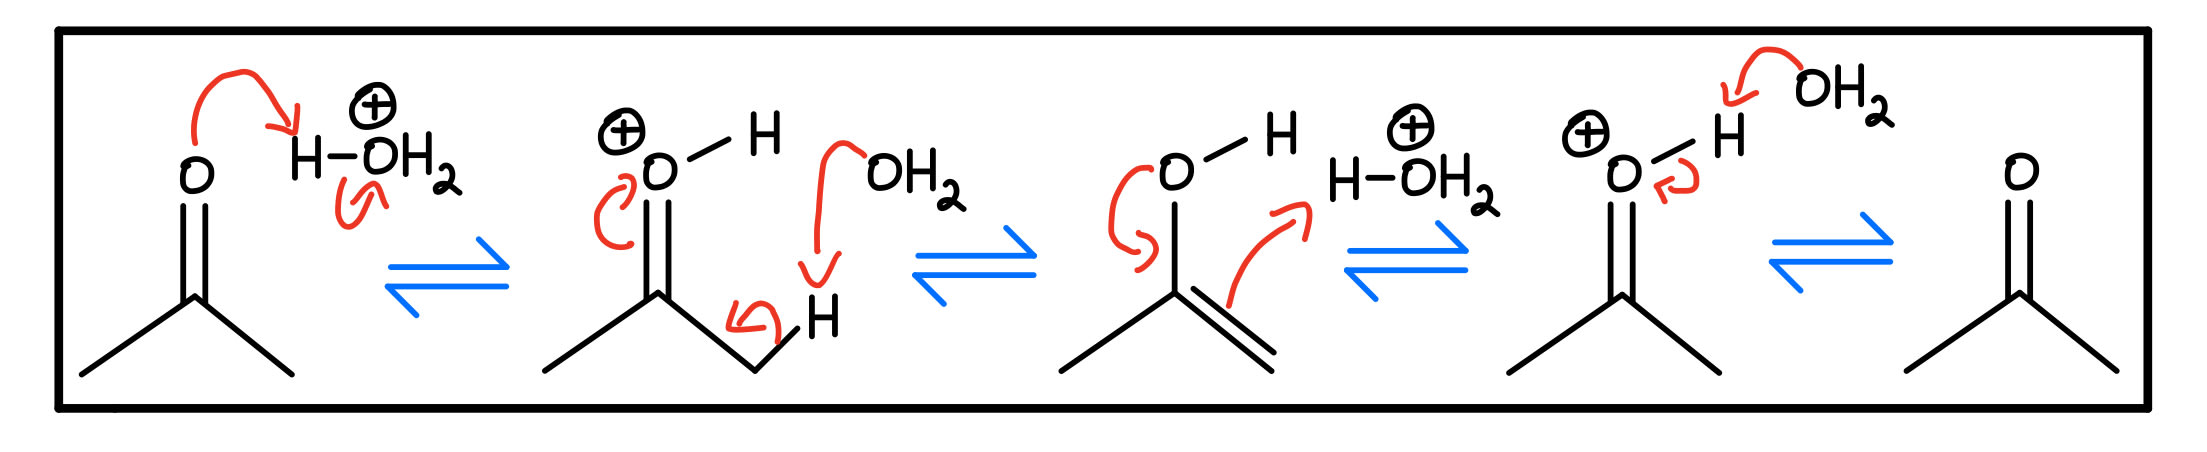 Acid-catalyzed mechanism